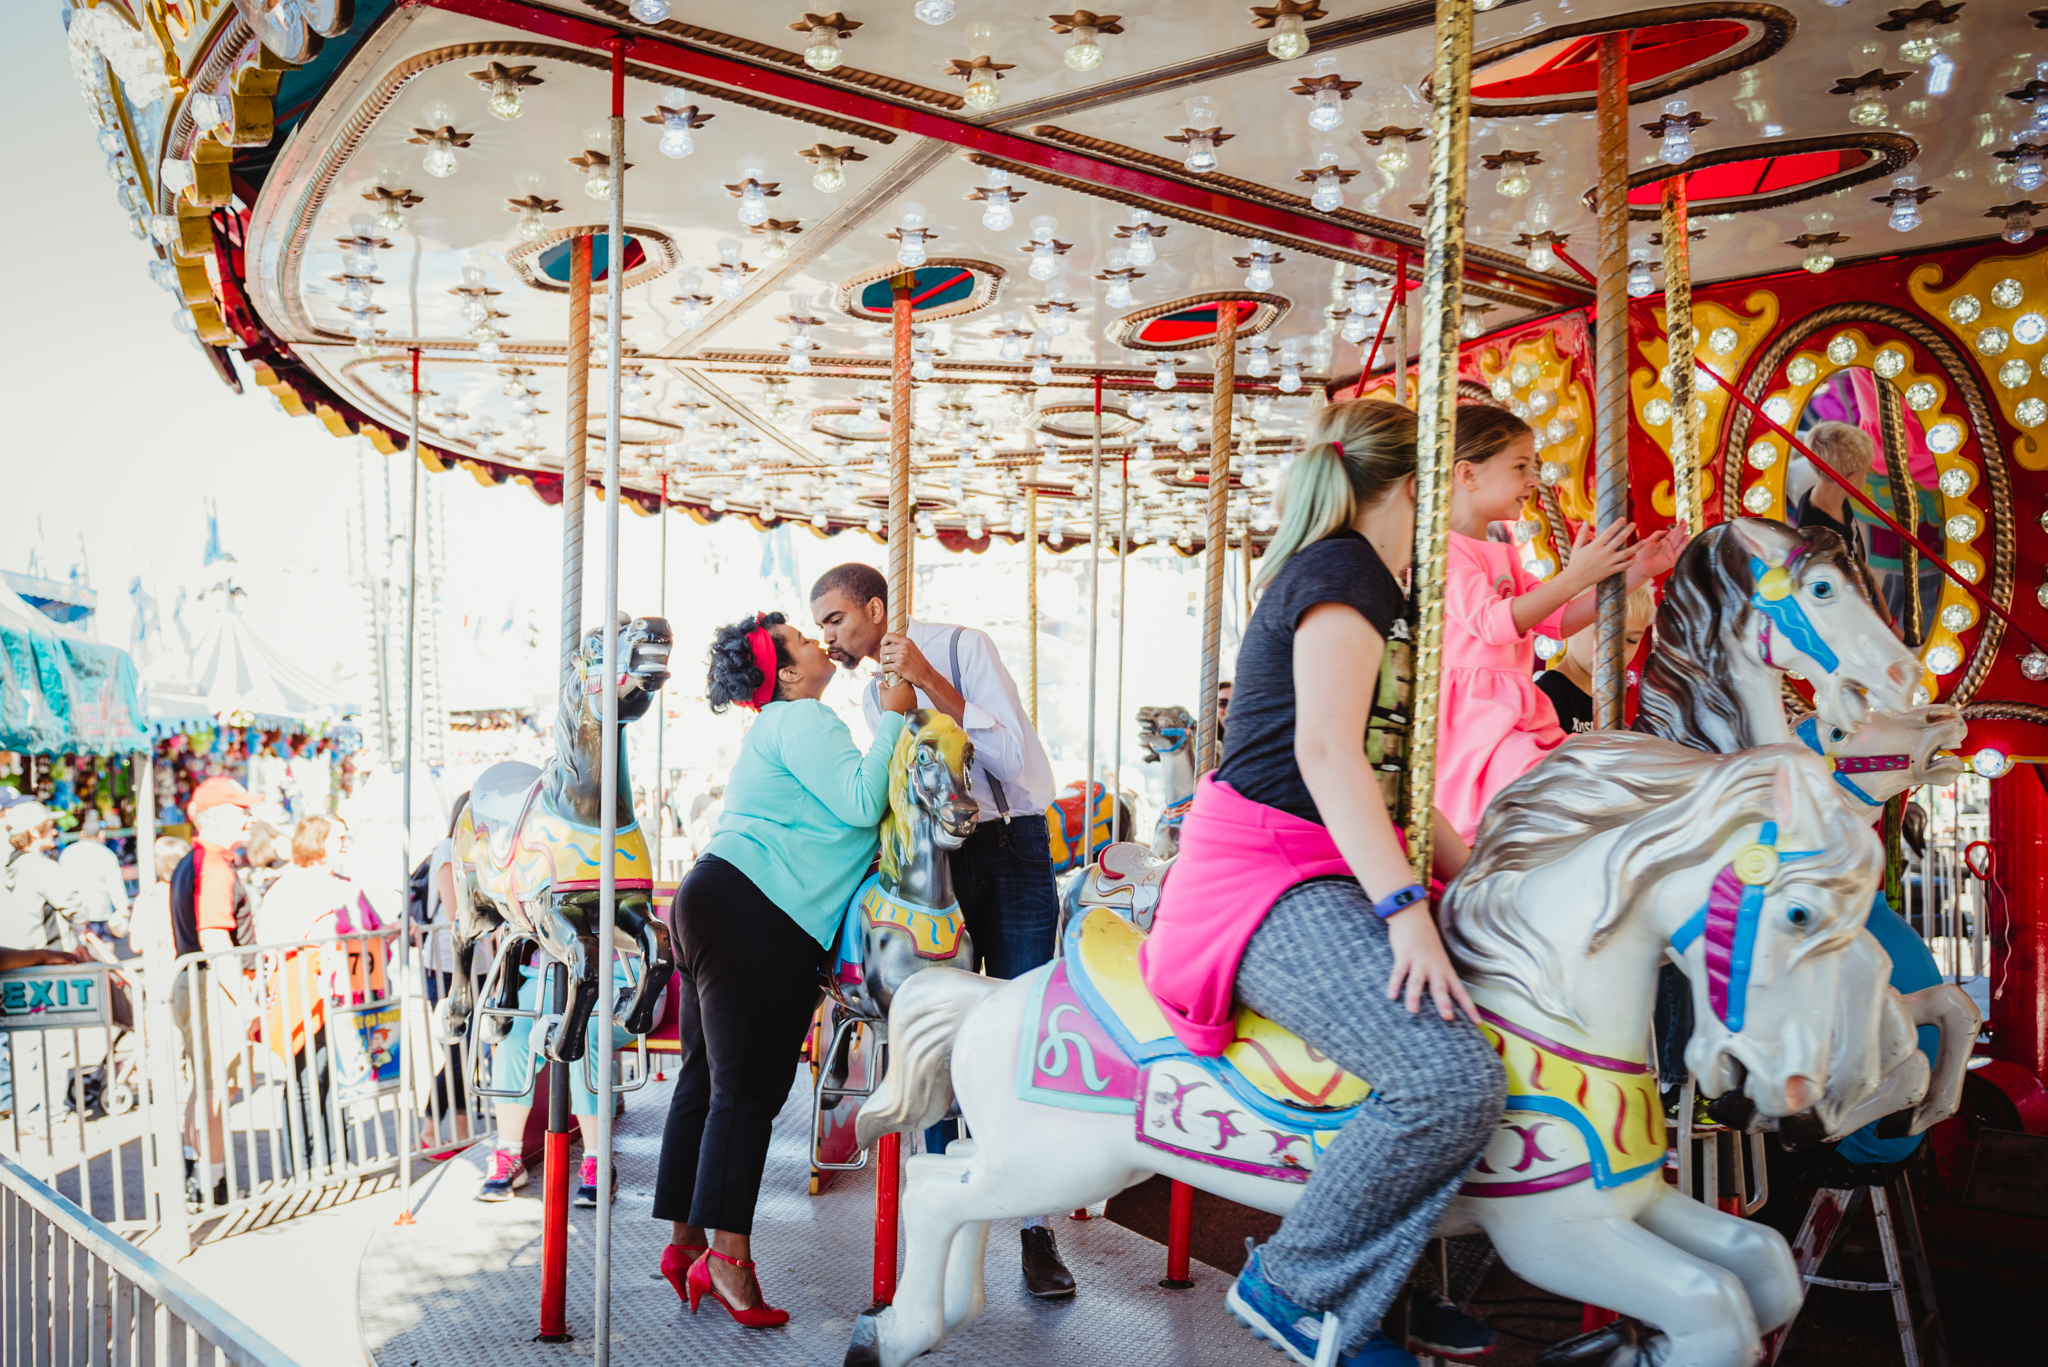 stealing-a-kiss-on-the-carousel-at-the-NC-State-fair.jpg